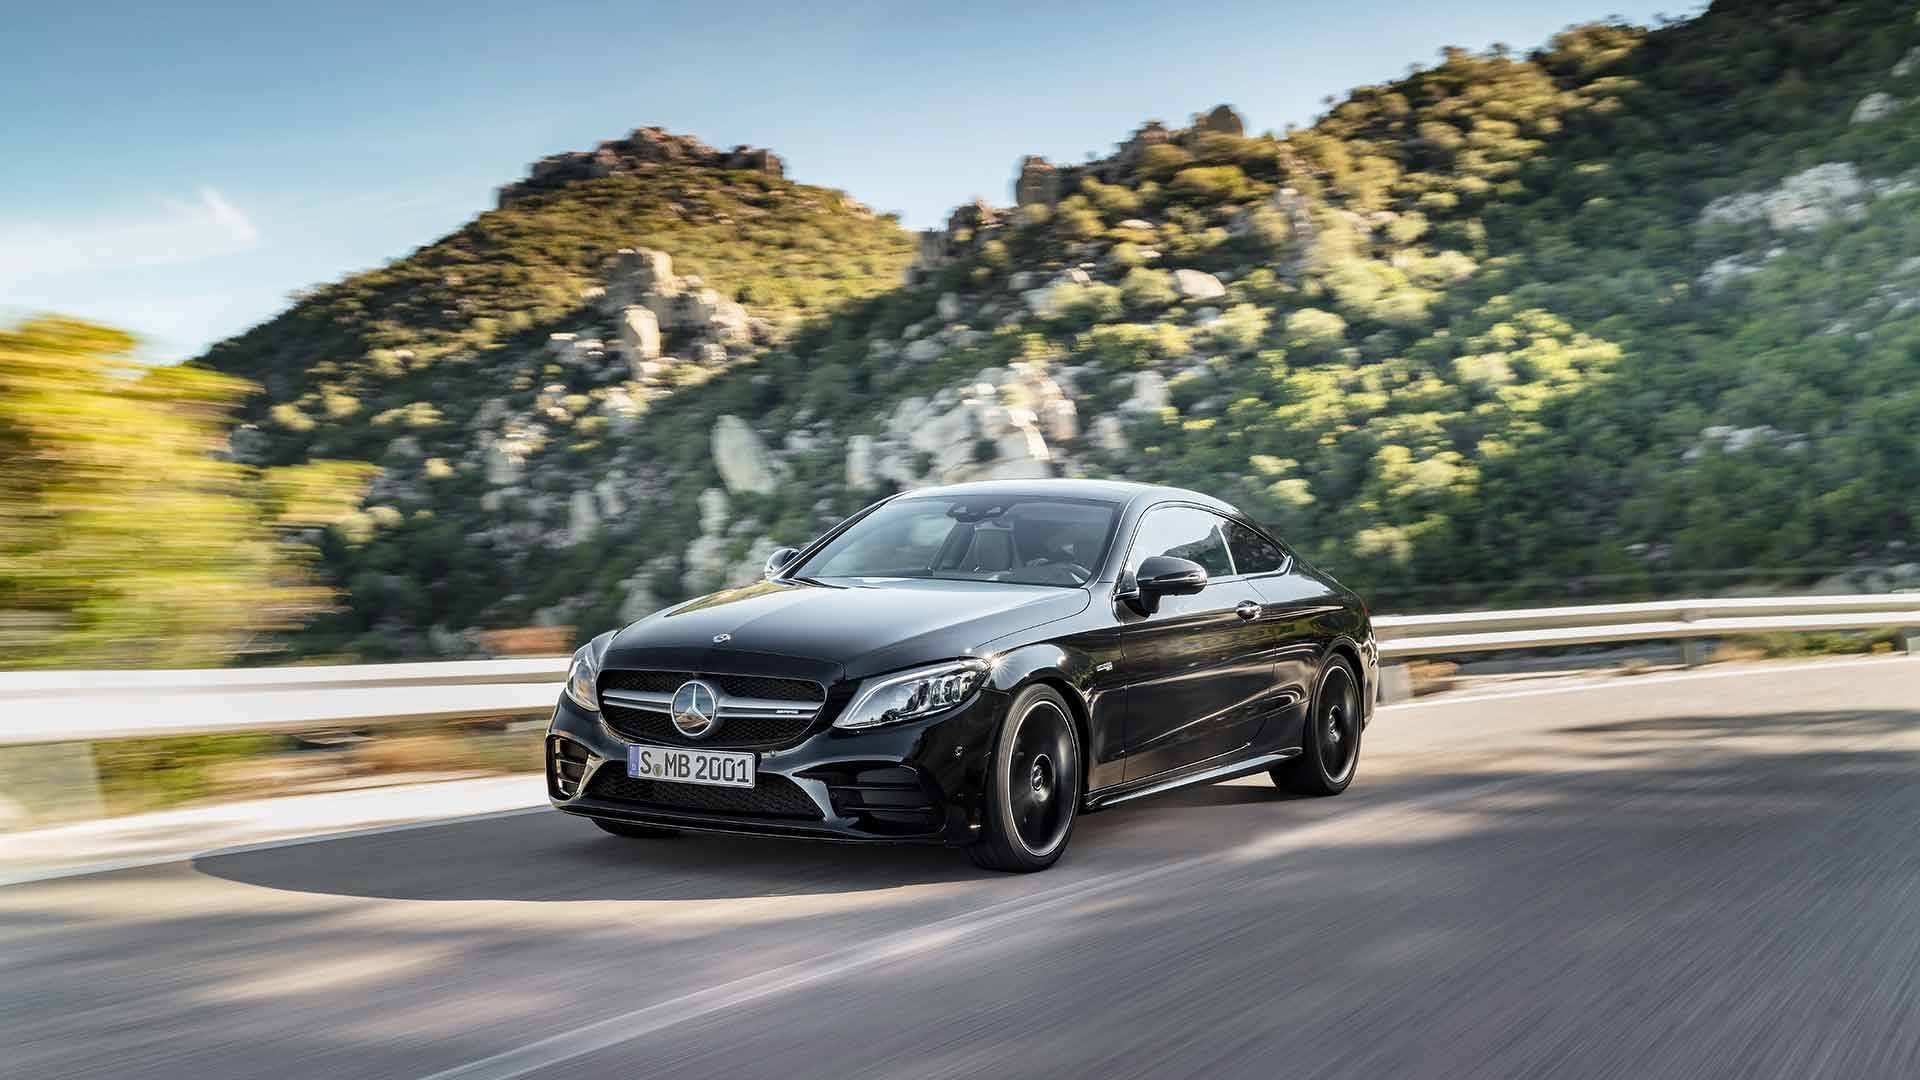 74 All New 2019 Mercedes Benz C Class Engine